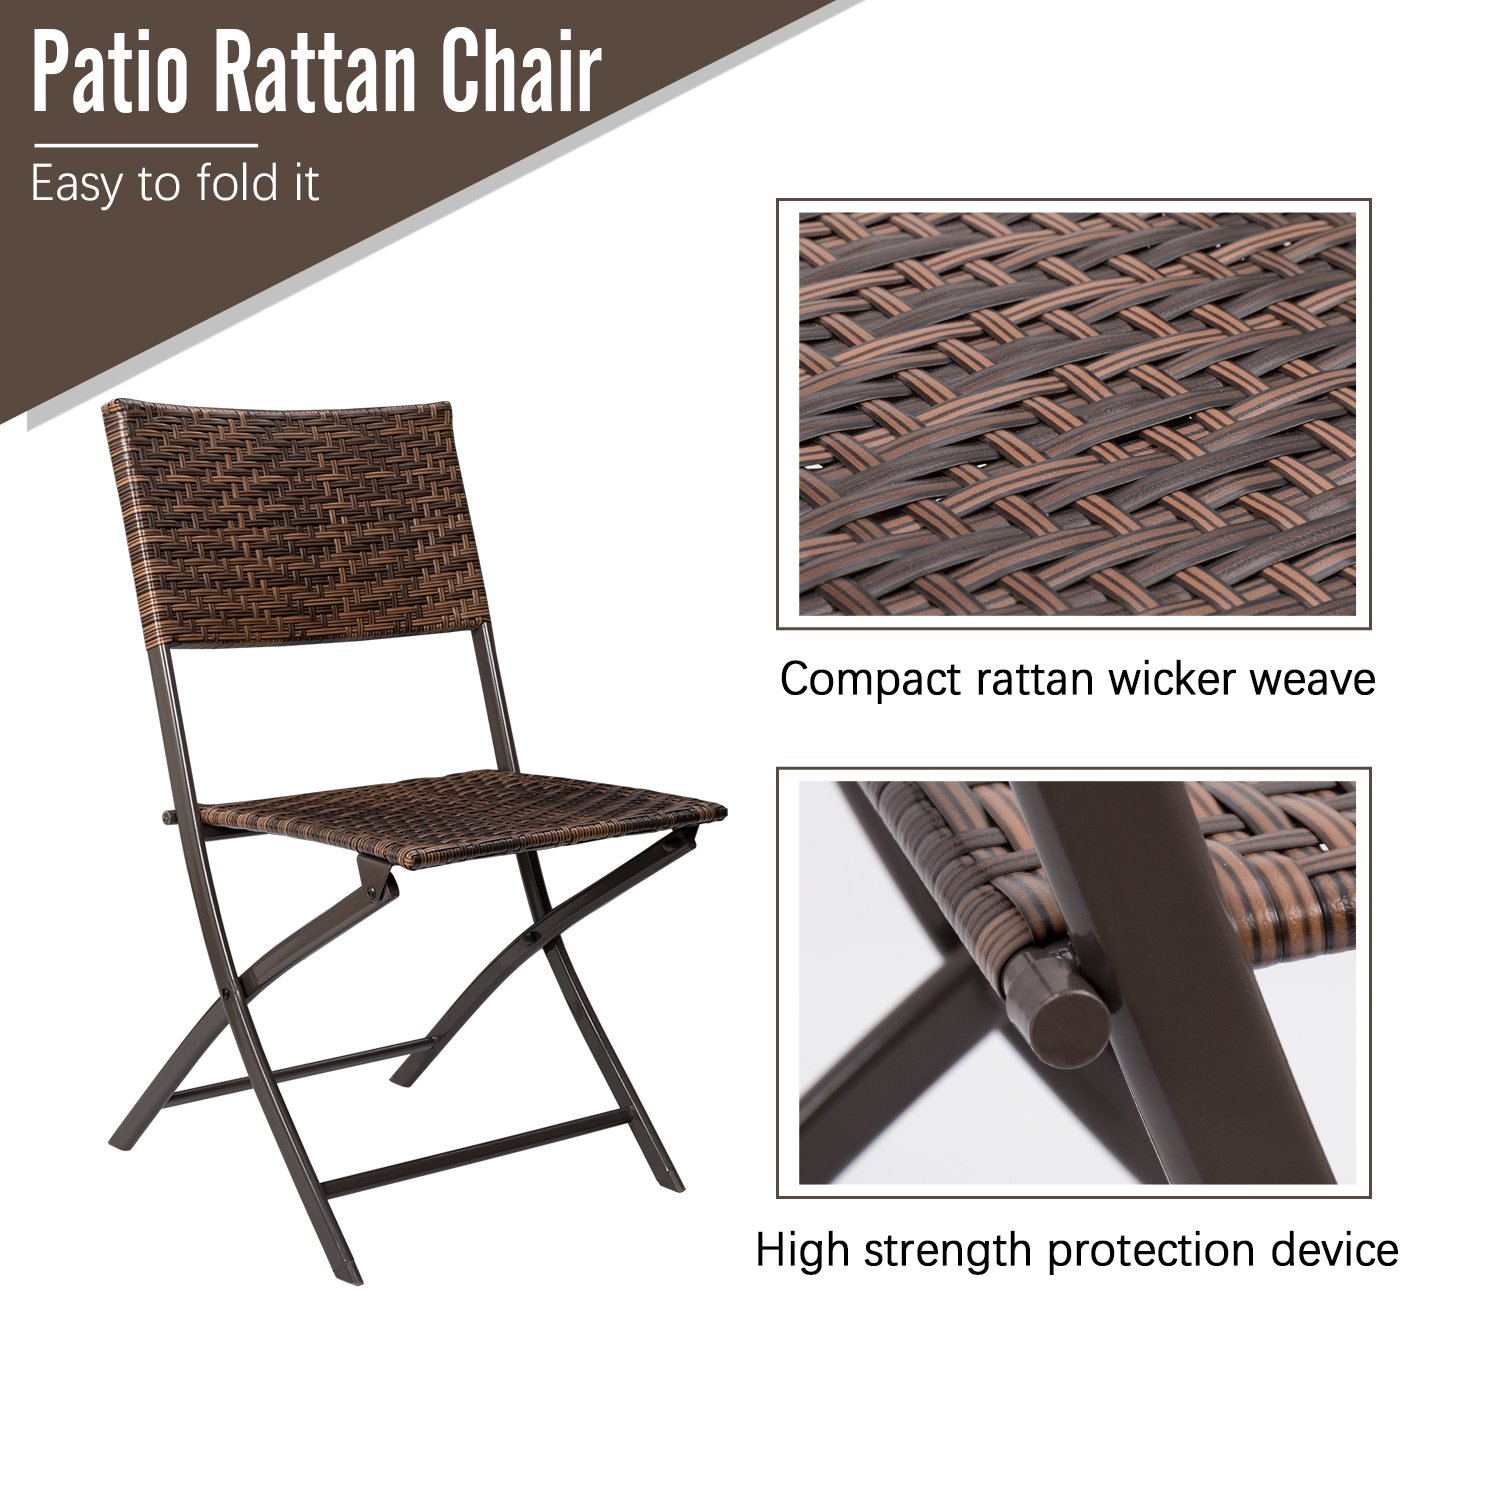 Devoko Rattan Patio Dining Chair 4 Pieces Space Saving Deck Camping Chairs Garden Pool Beach Lawn Using Outdoor Folding Chair (Brown) by Devoko (Image #3)